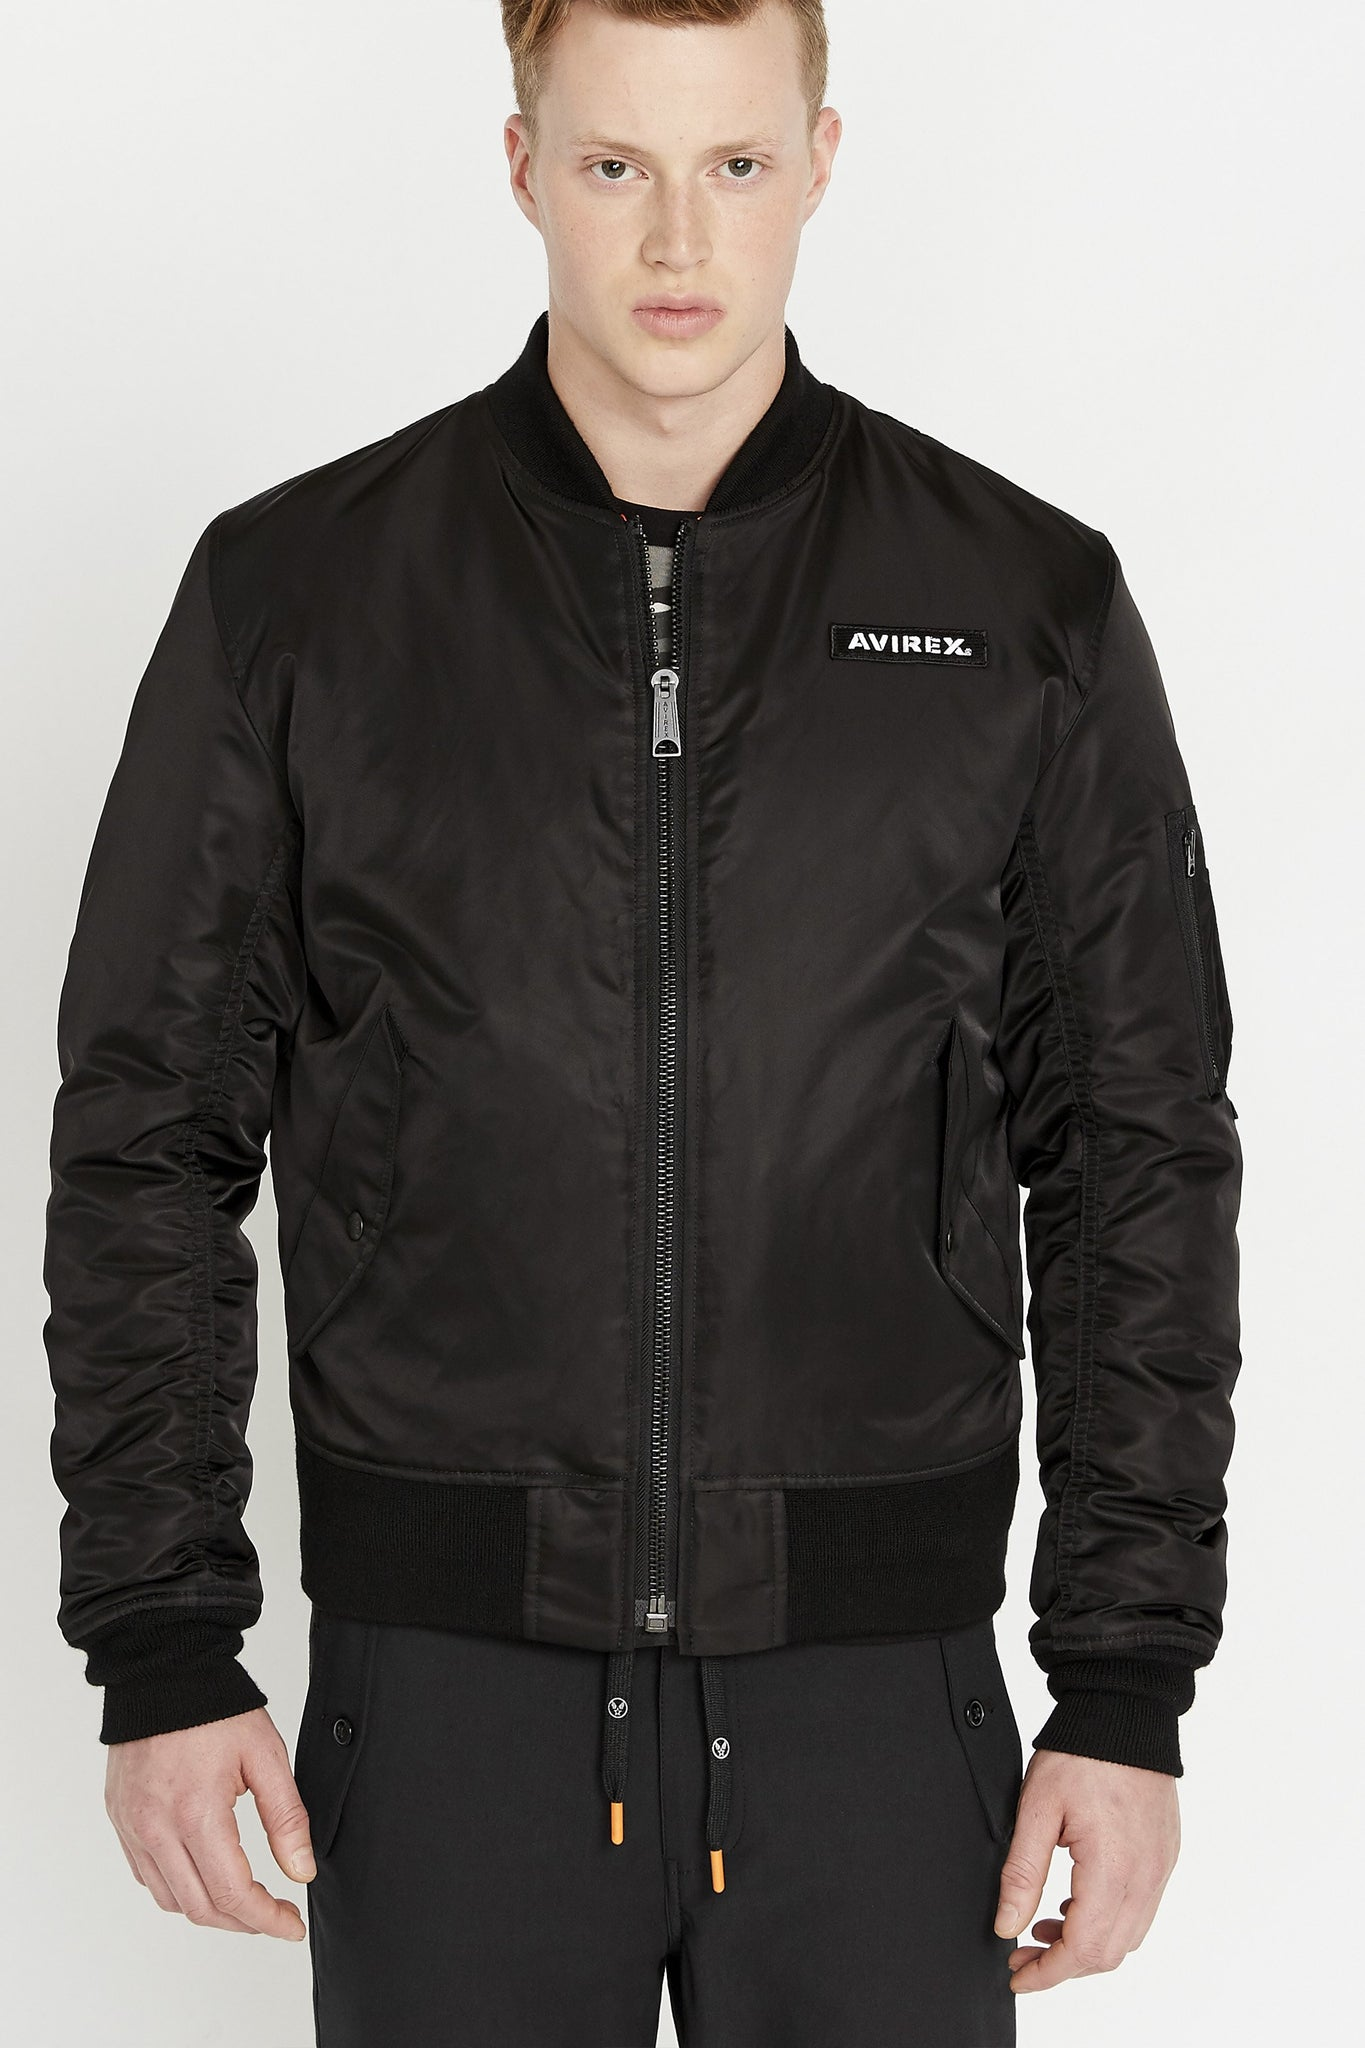 Front view of men wearing a fully zipped black original aviation bomber nylon jacket with Iconic utility pocket on sleeve and two side pockets